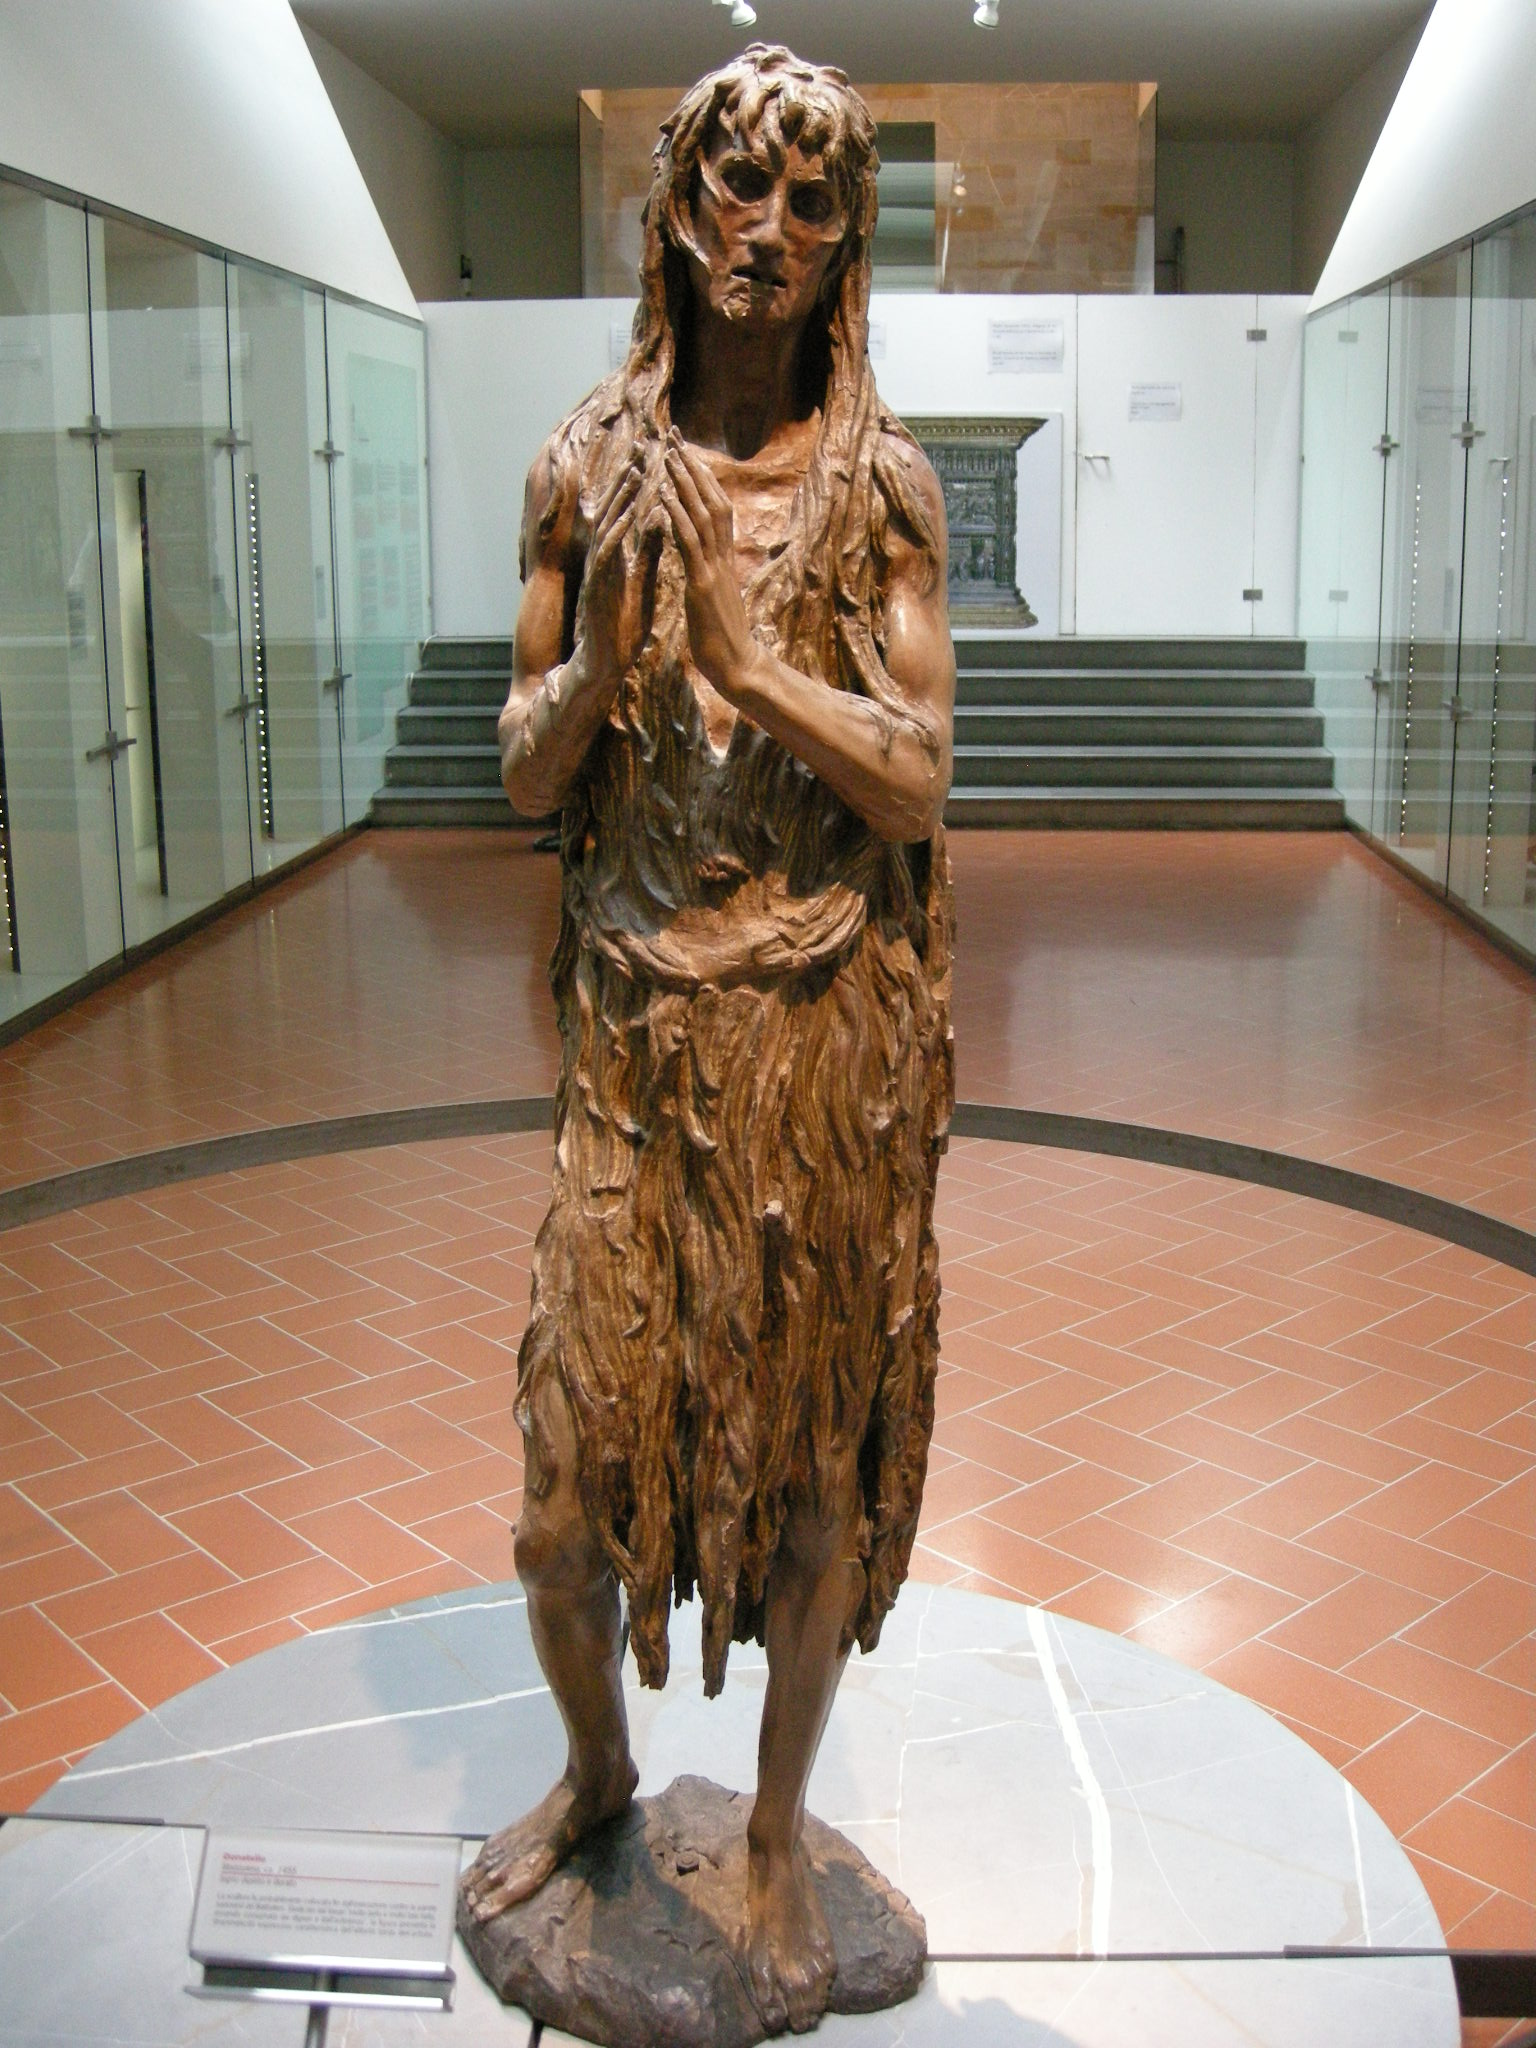 the Almighty  Donatello shows us the dreadful pain of that separationDonatello Mary Magdalene